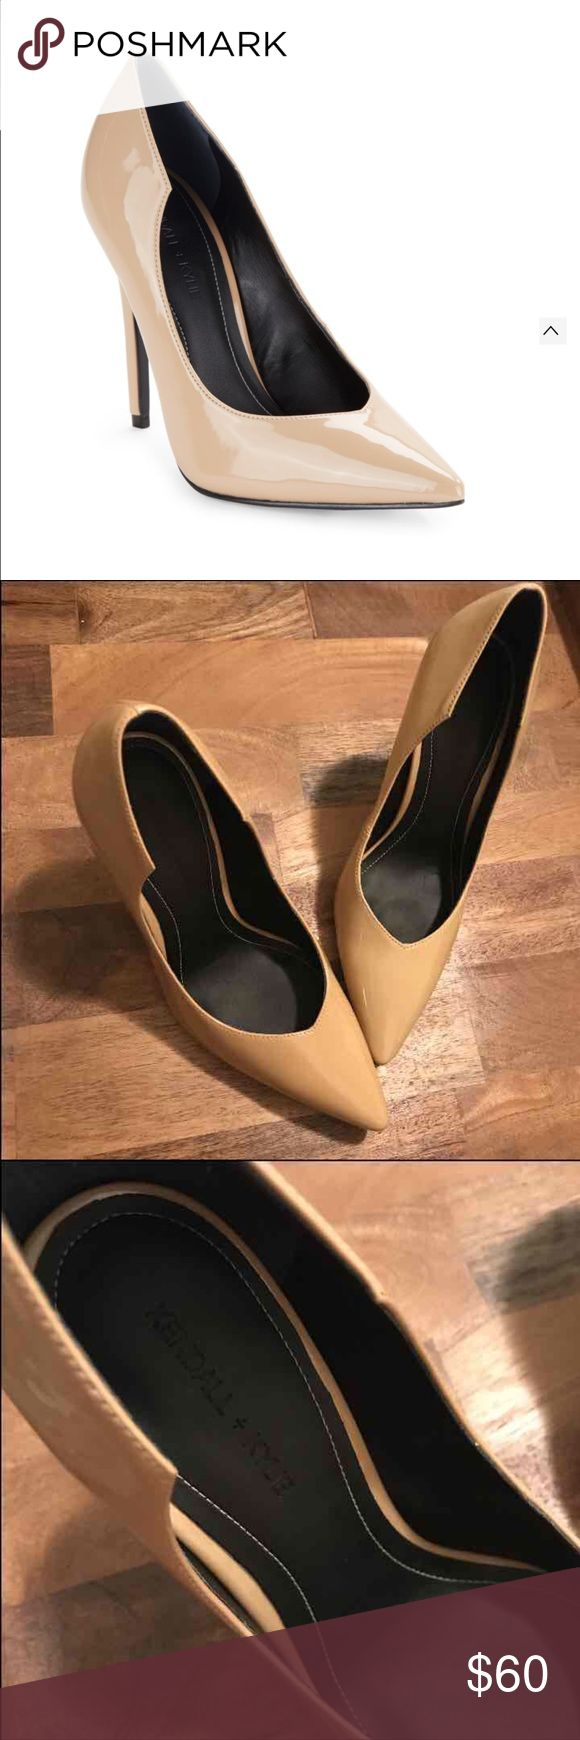 Kendall and Kylie Nude Pumps New without box, size 7.5, patent leather Kendall & Kylie Shoes Heels